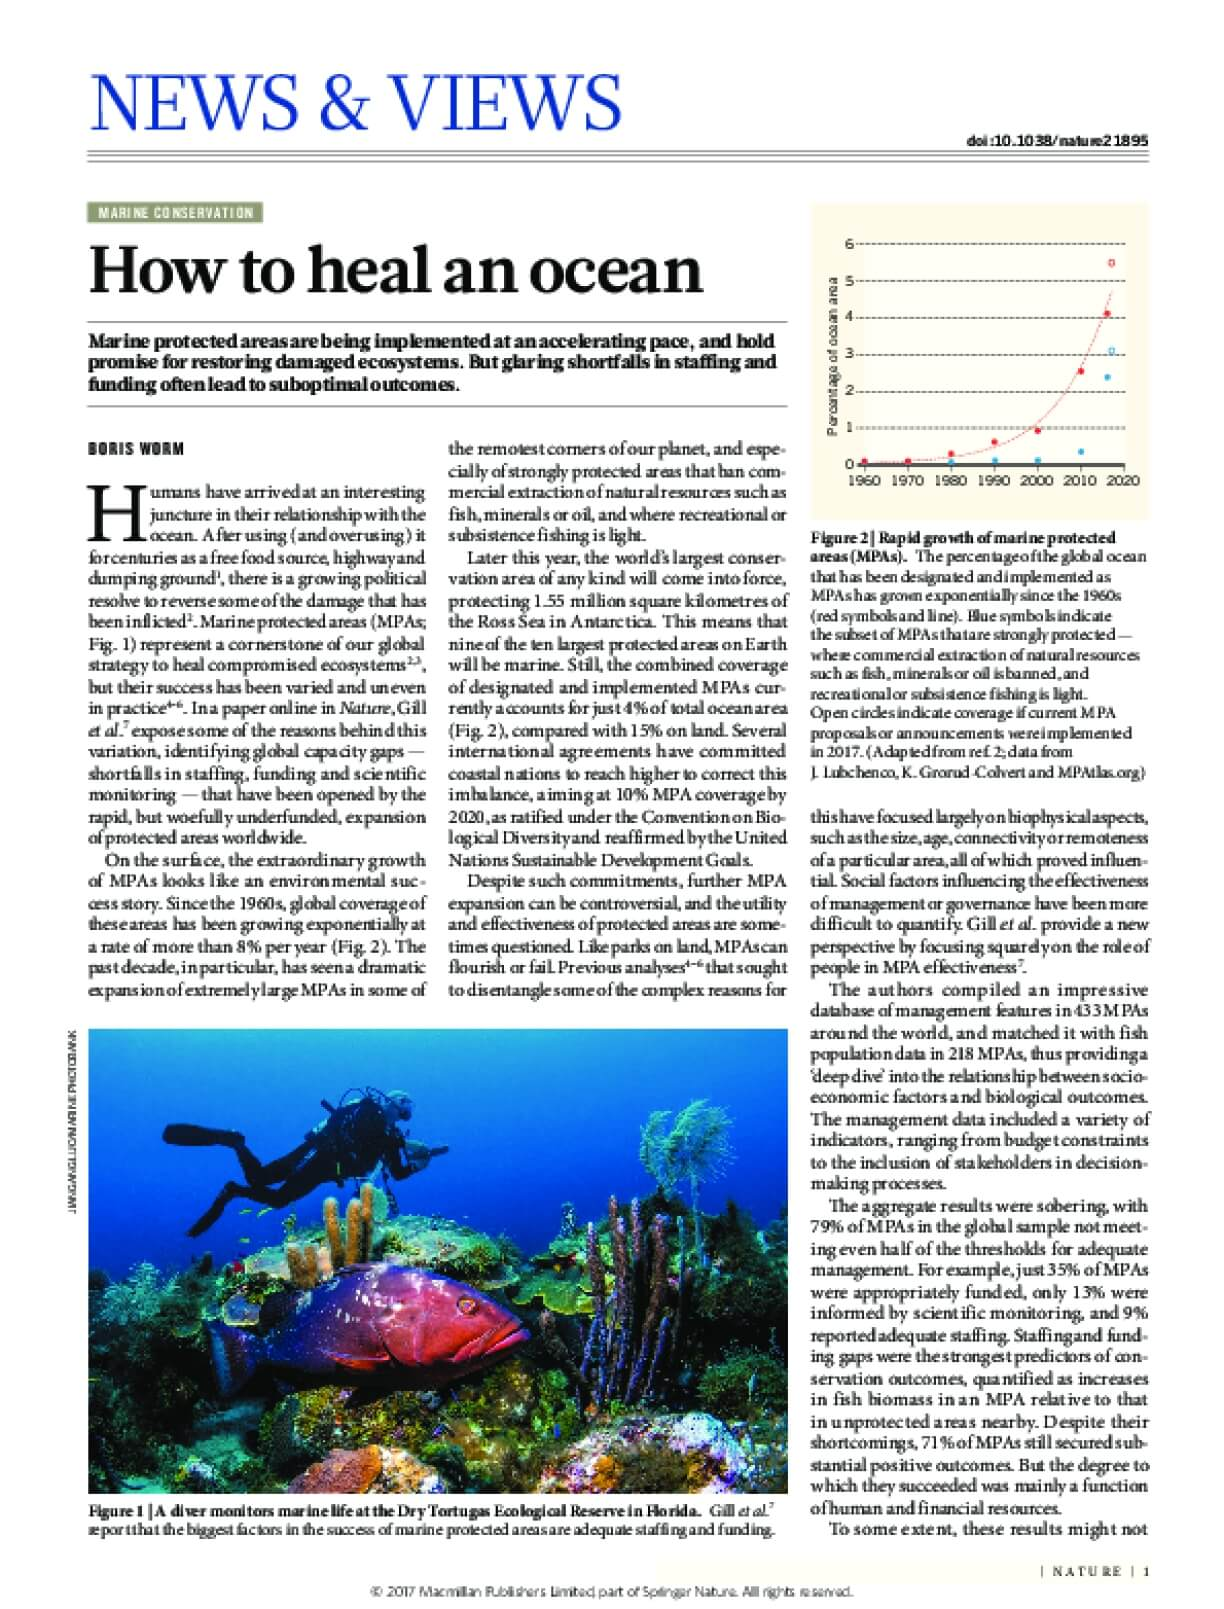 How to Heal an Ocean